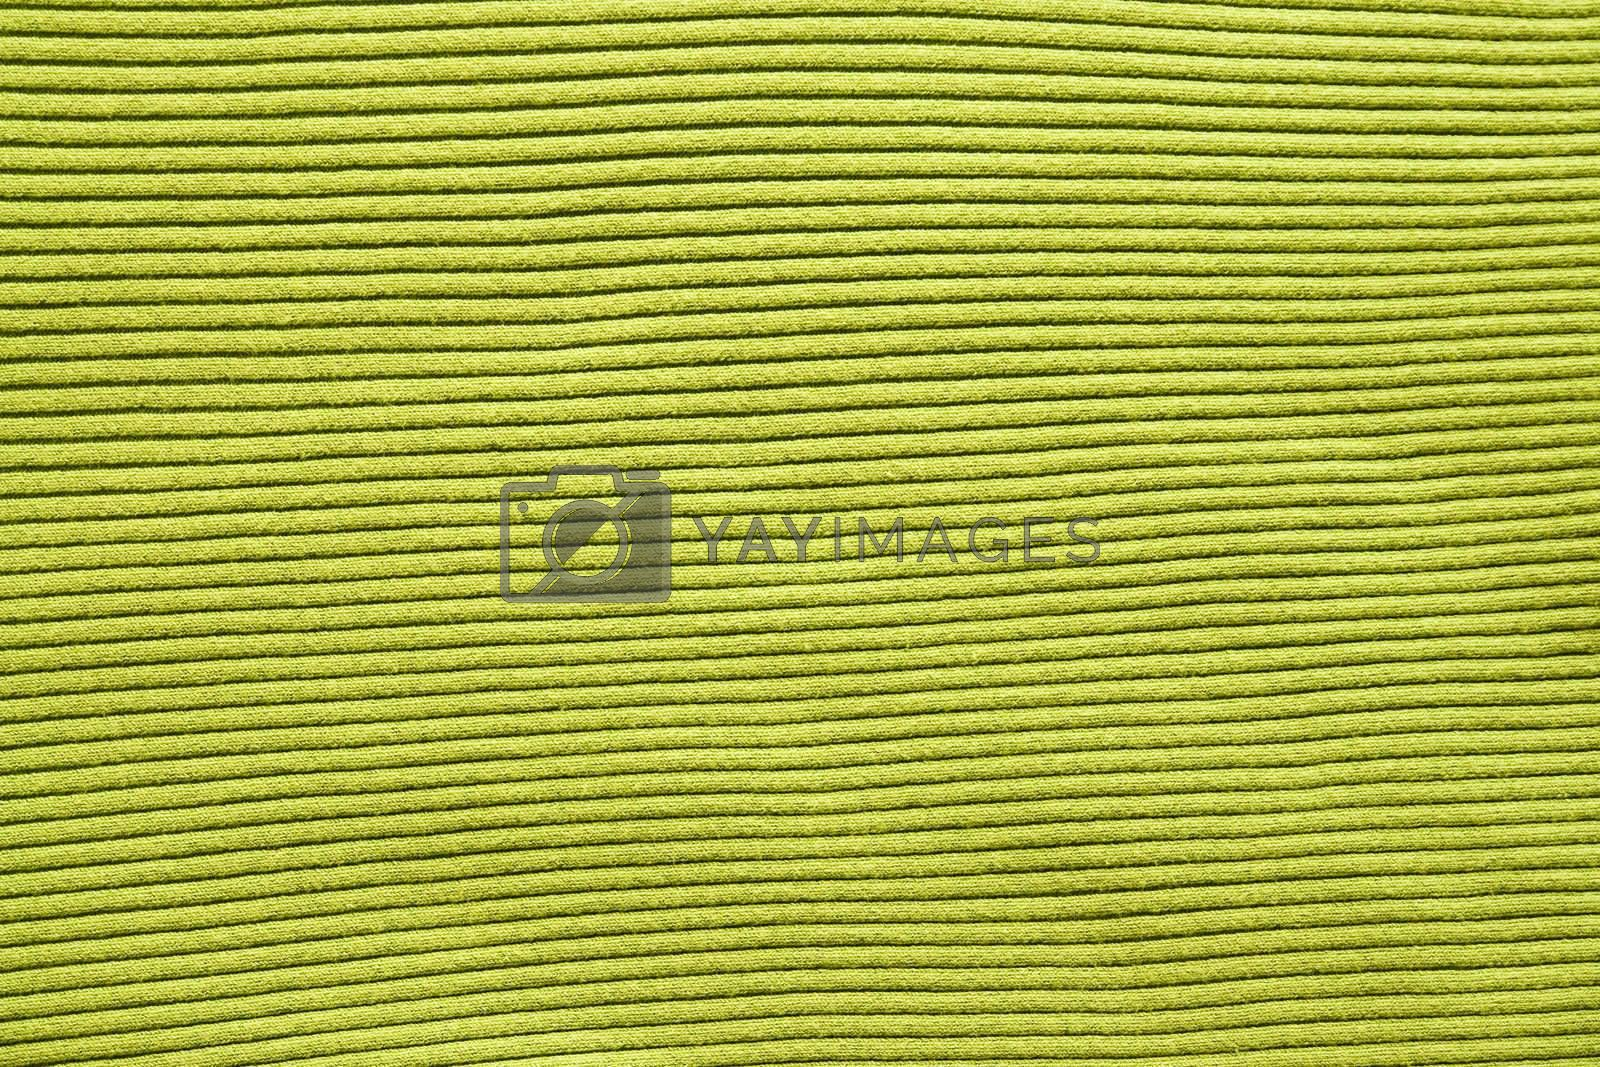 green tex with lines. horizontal photo image